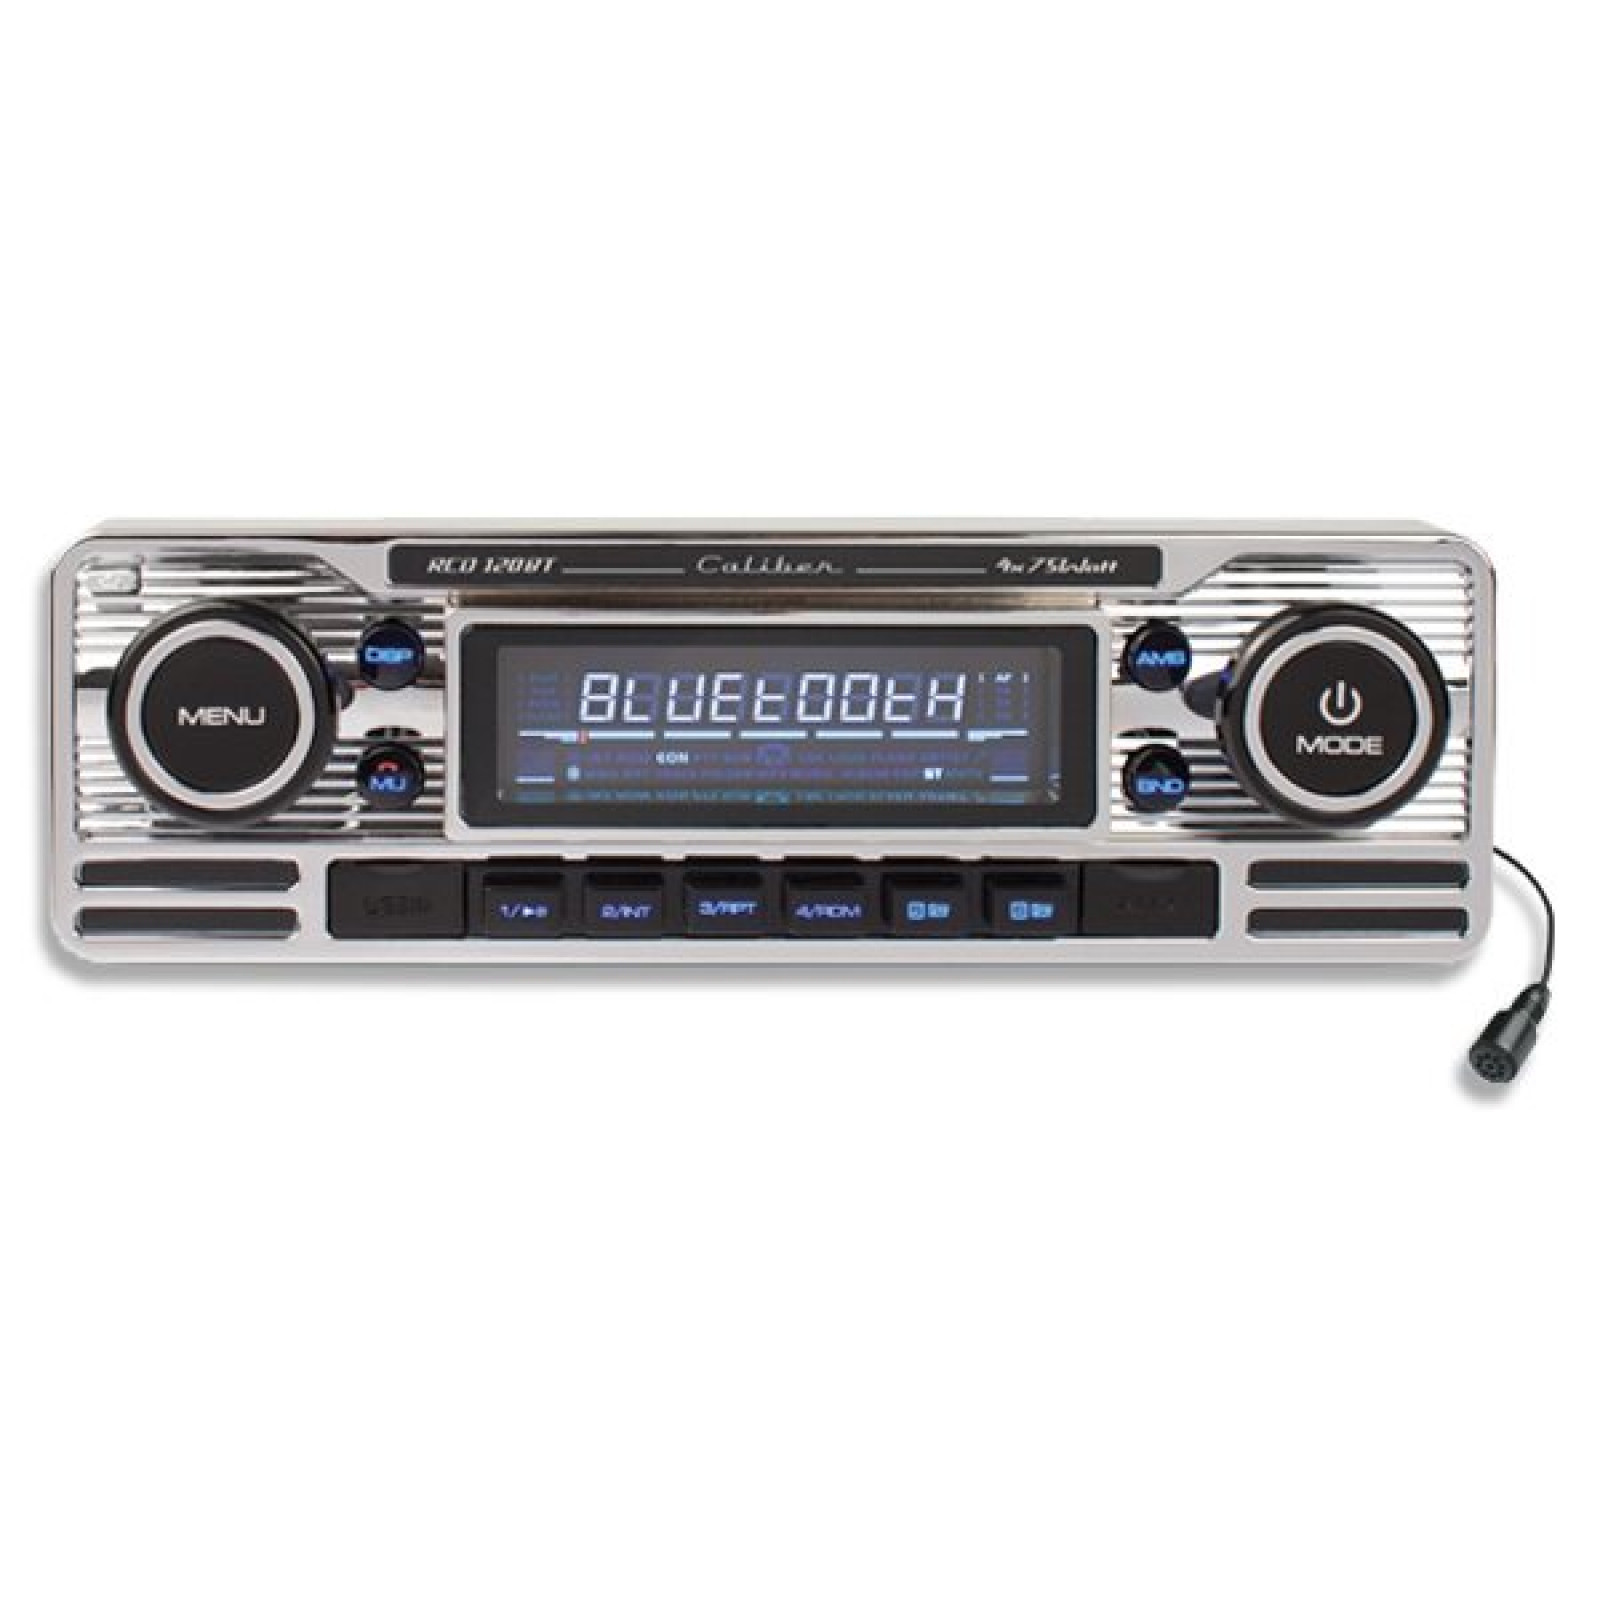 caliber cd120bt classic retro style single din radio cd. Black Bedroom Furniture Sets. Home Design Ideas